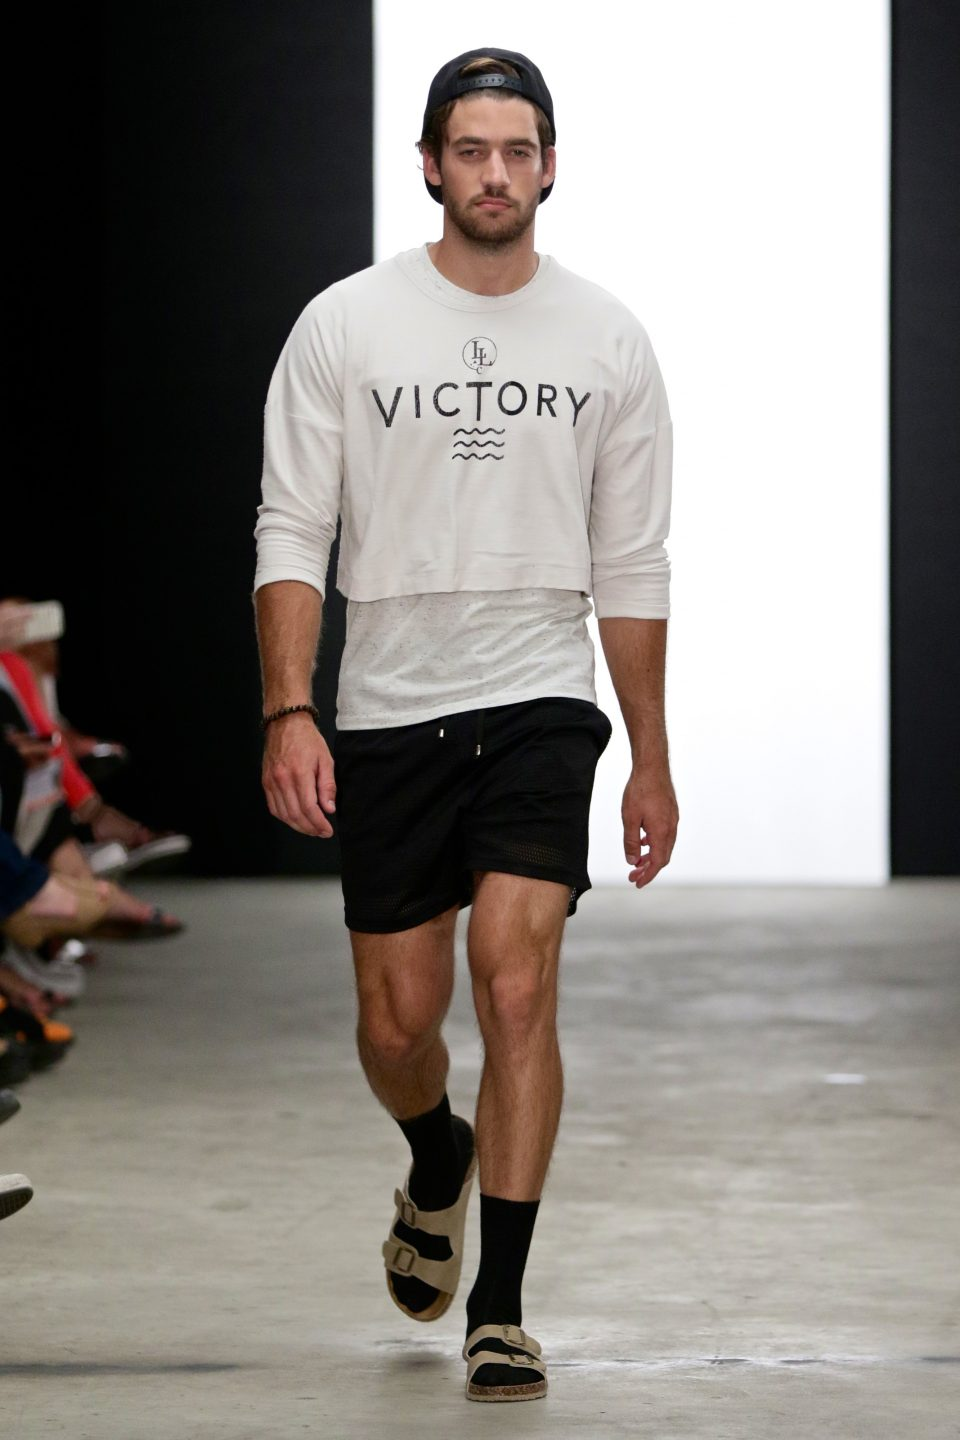 15a SAMW SDR  5235 LuckyLuke 960x1440 - 5 Local Menswear designers to Watch in 2017